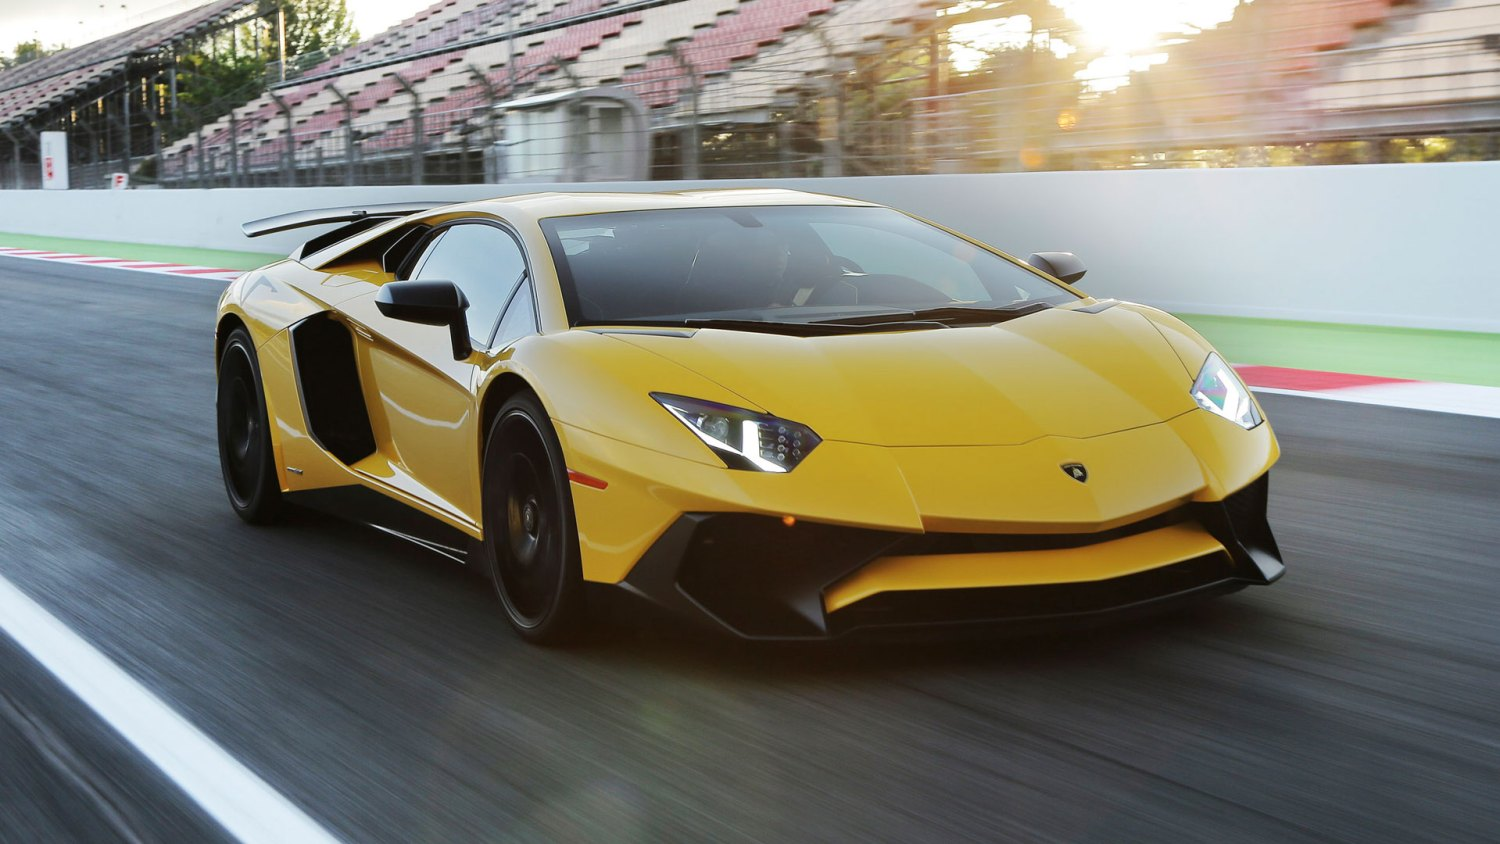 Lamborghini Aventador SV - greatest cars of the decade